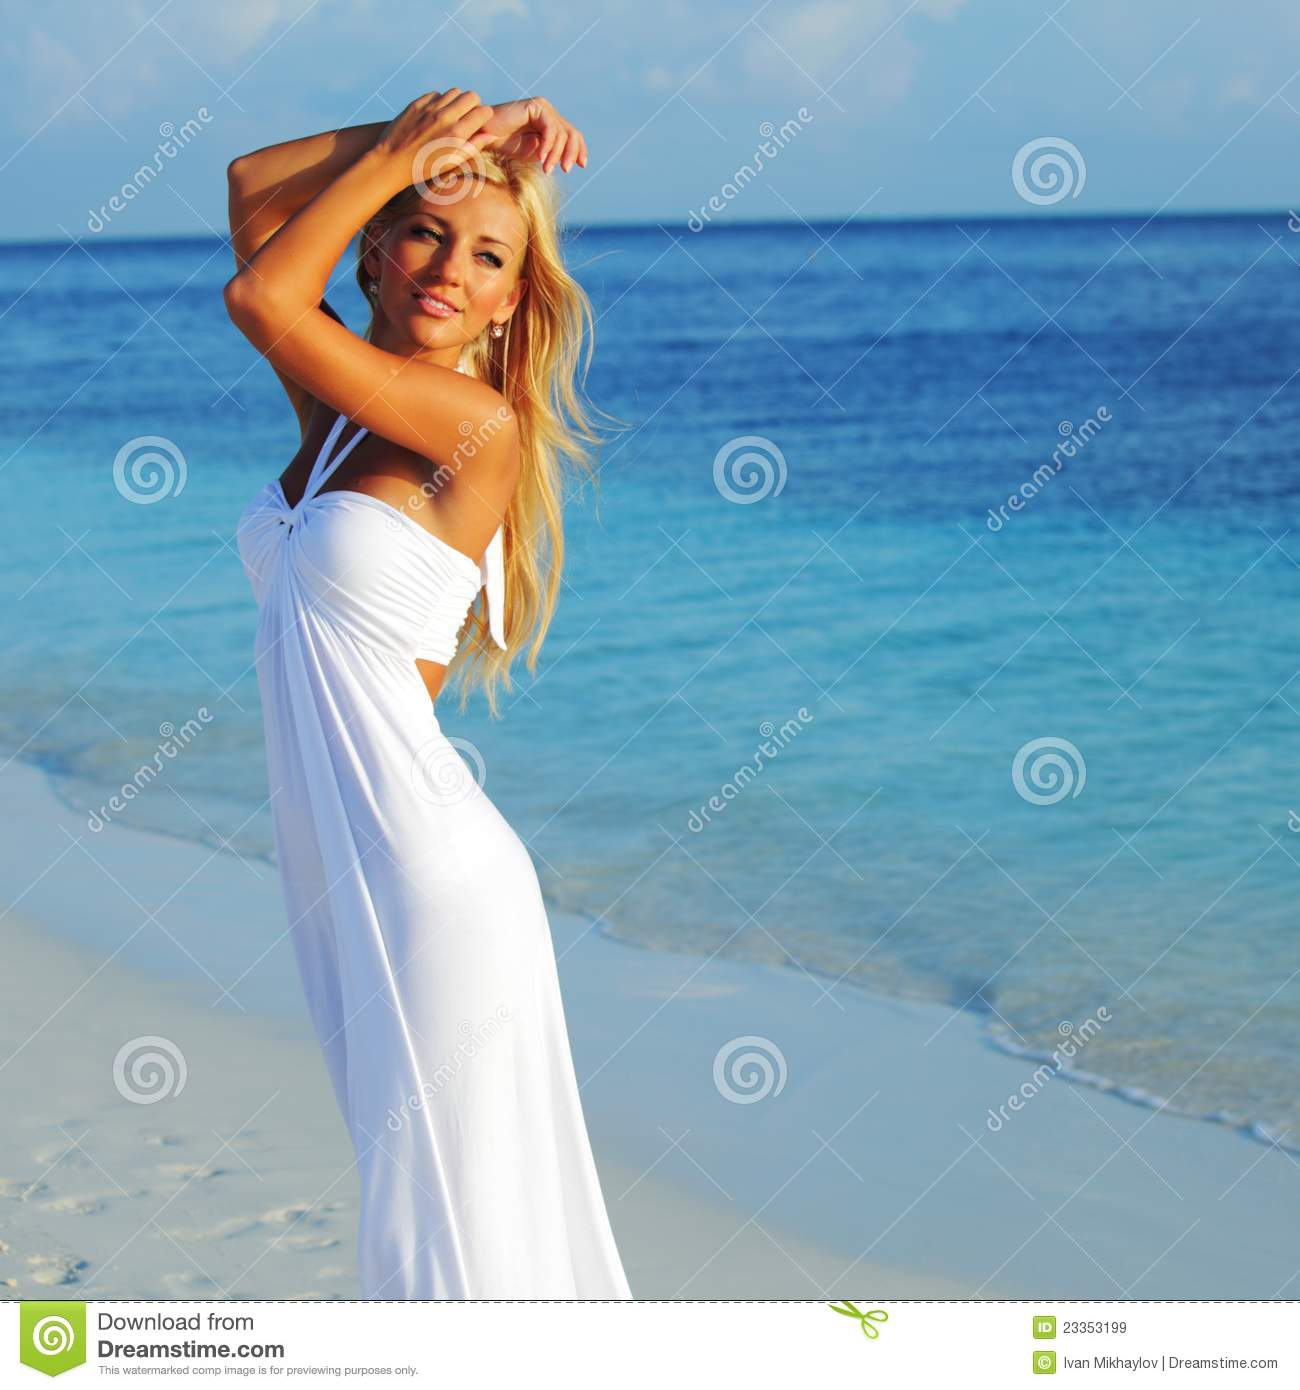 Woman On The Ocean Coast Stock Image. Image Of Body, Make